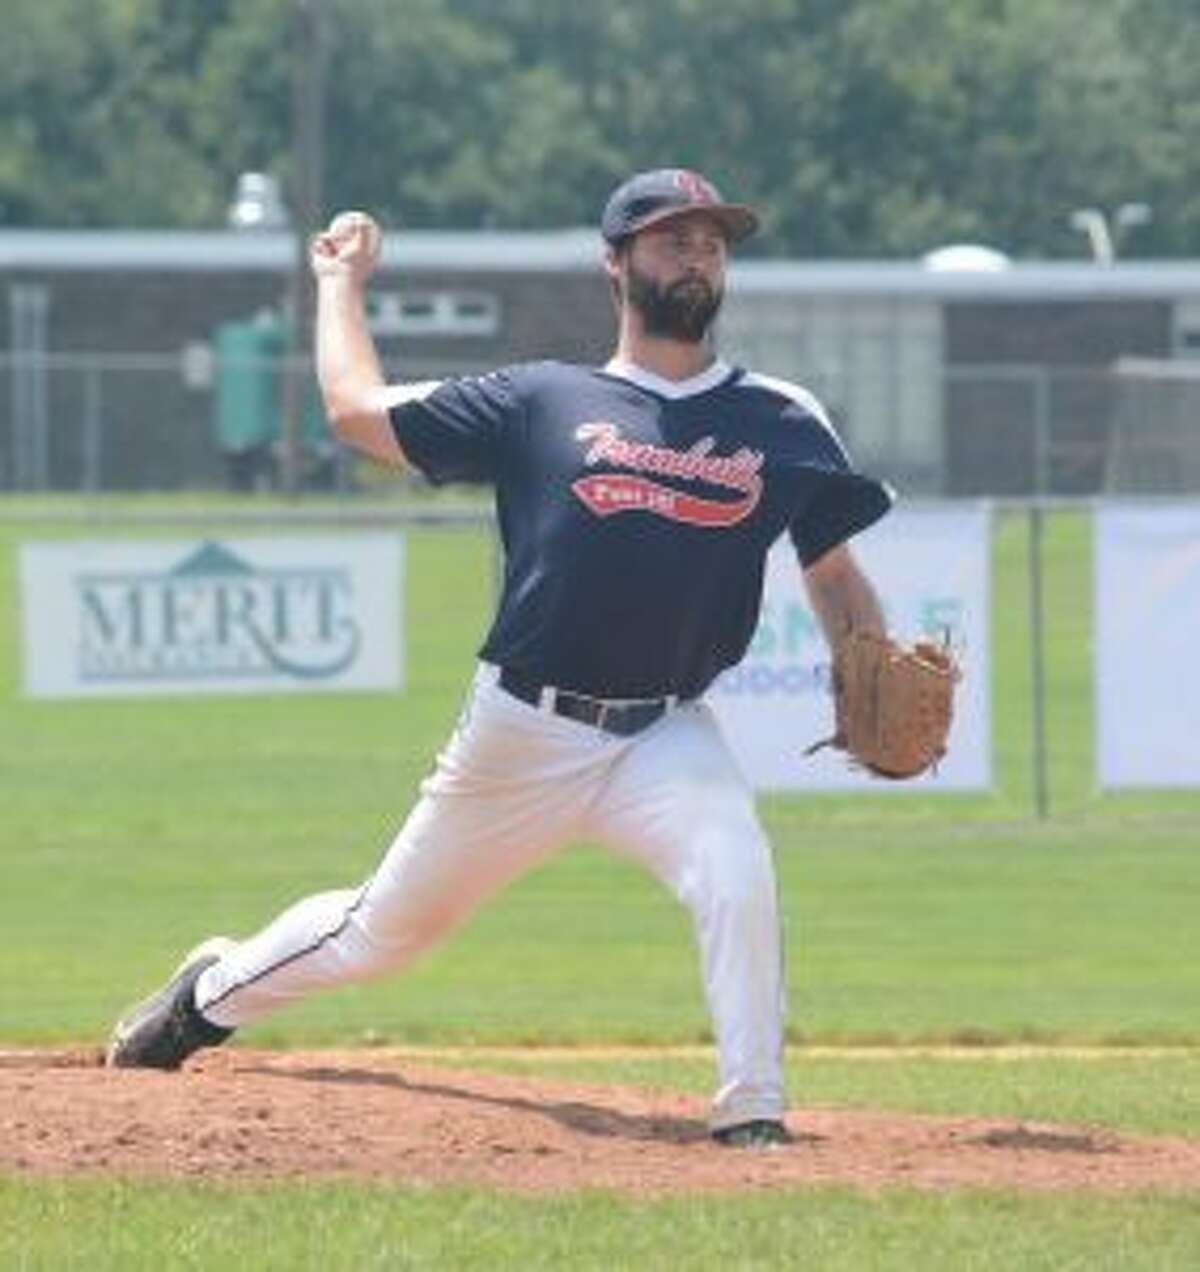 Andrew Lojko got the win on the mound and drove in a run for Trumbull. - Andy Hutchison photo